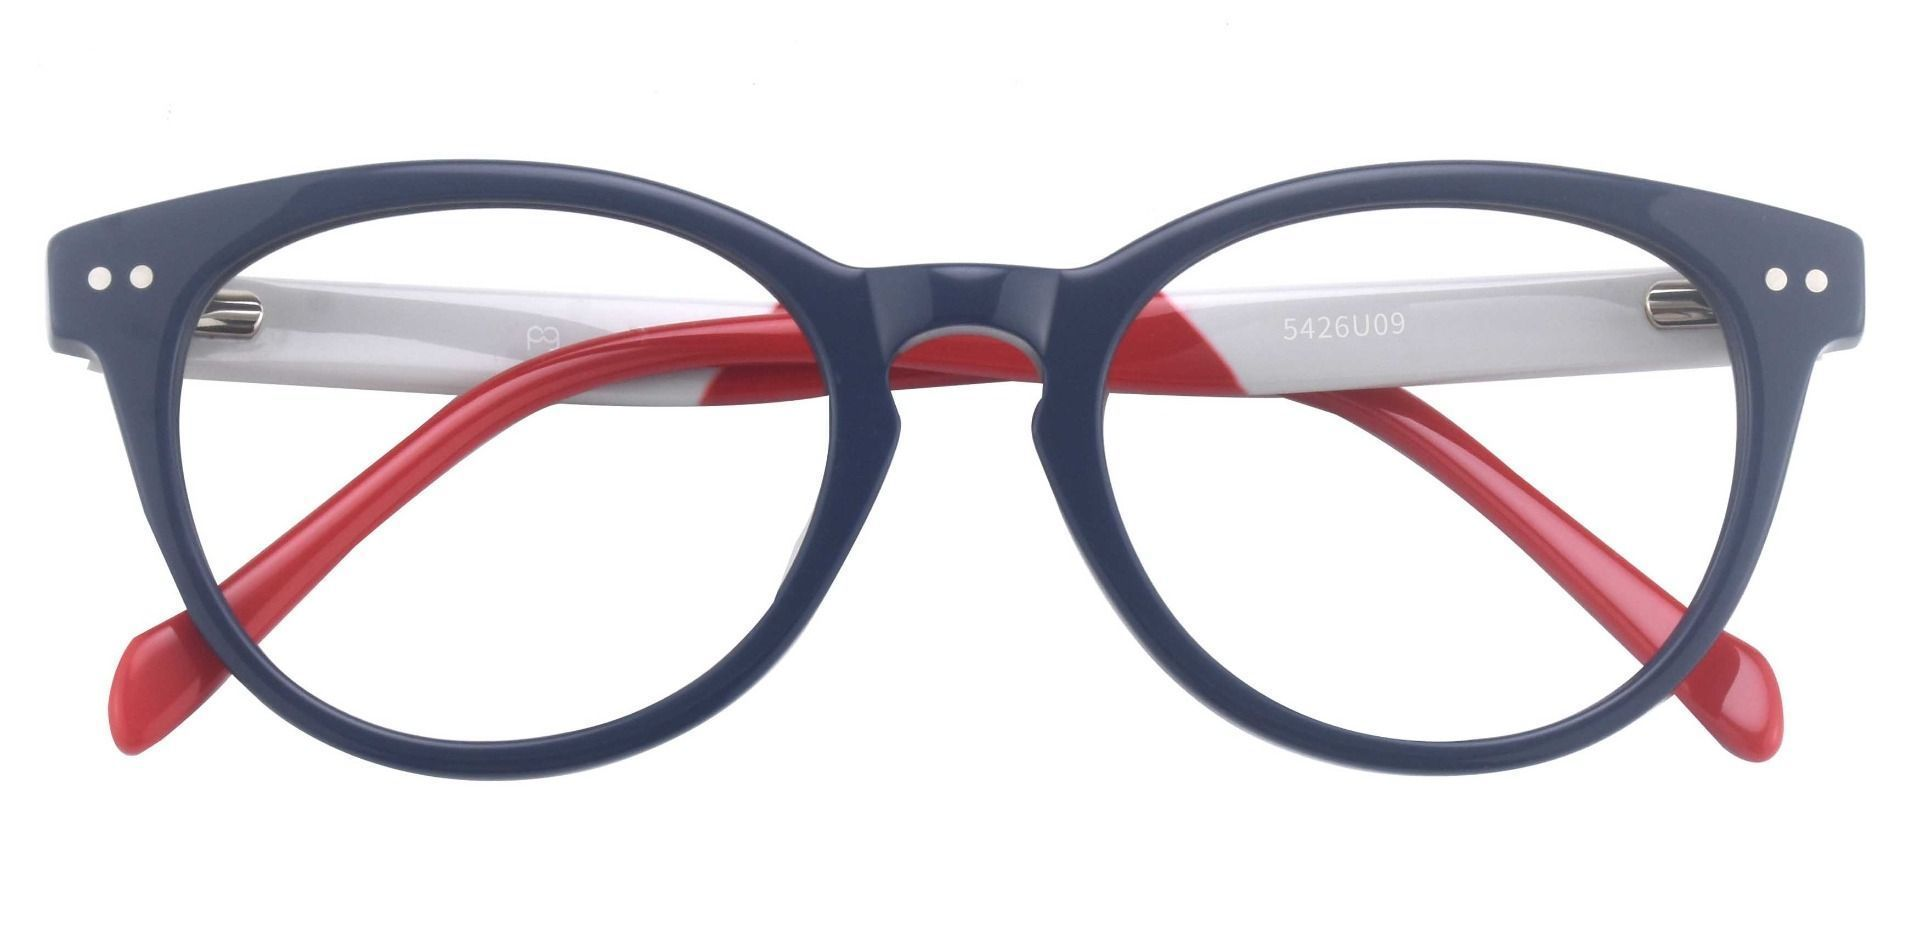 Common Oval Prescription Glasses - The Frame Is Blue And Red